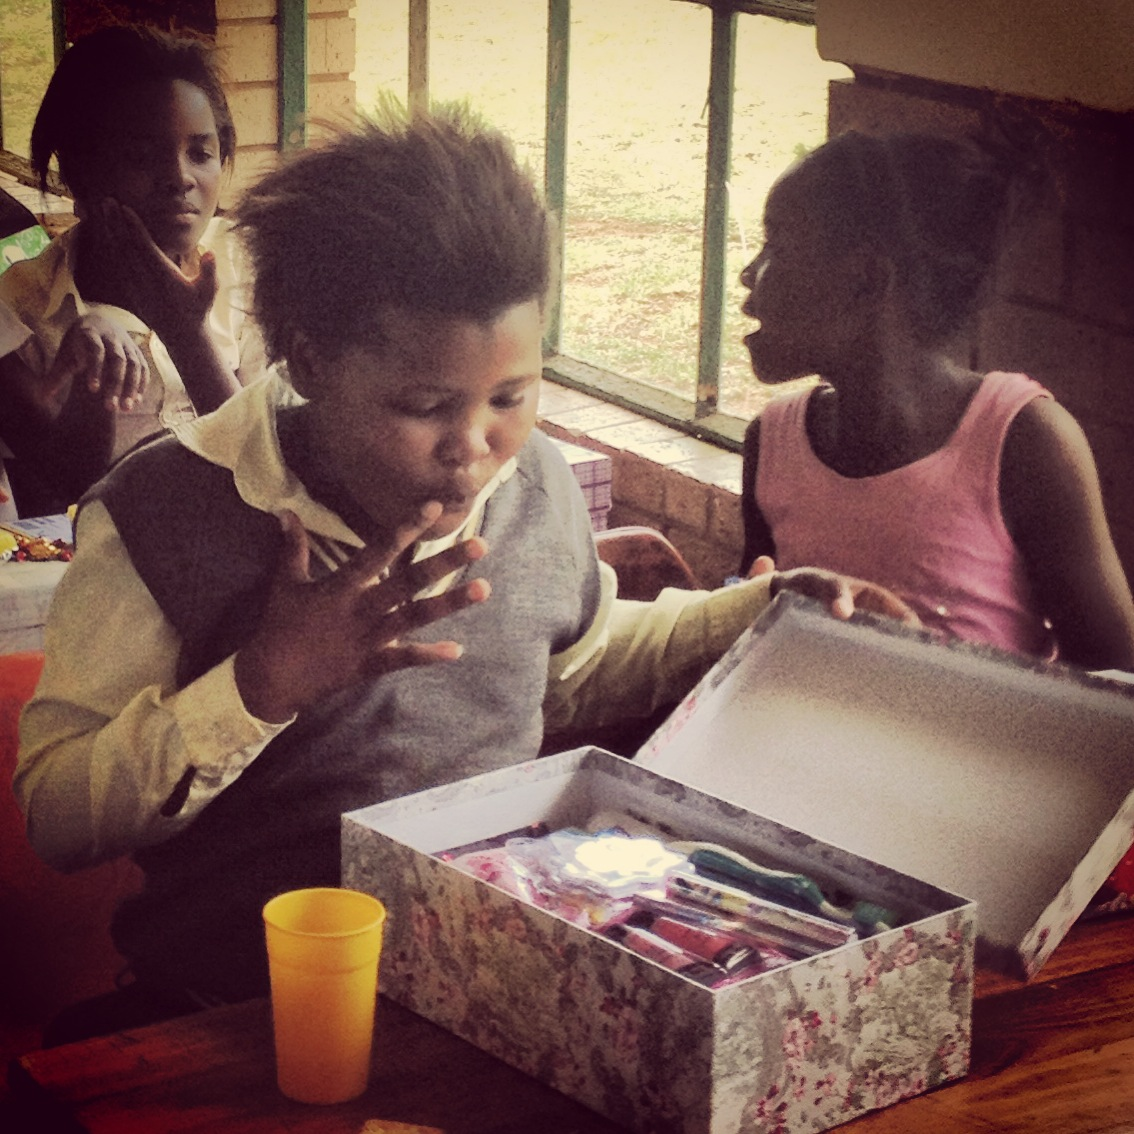 Giving Back - Santashoebox Project|HarassedMom